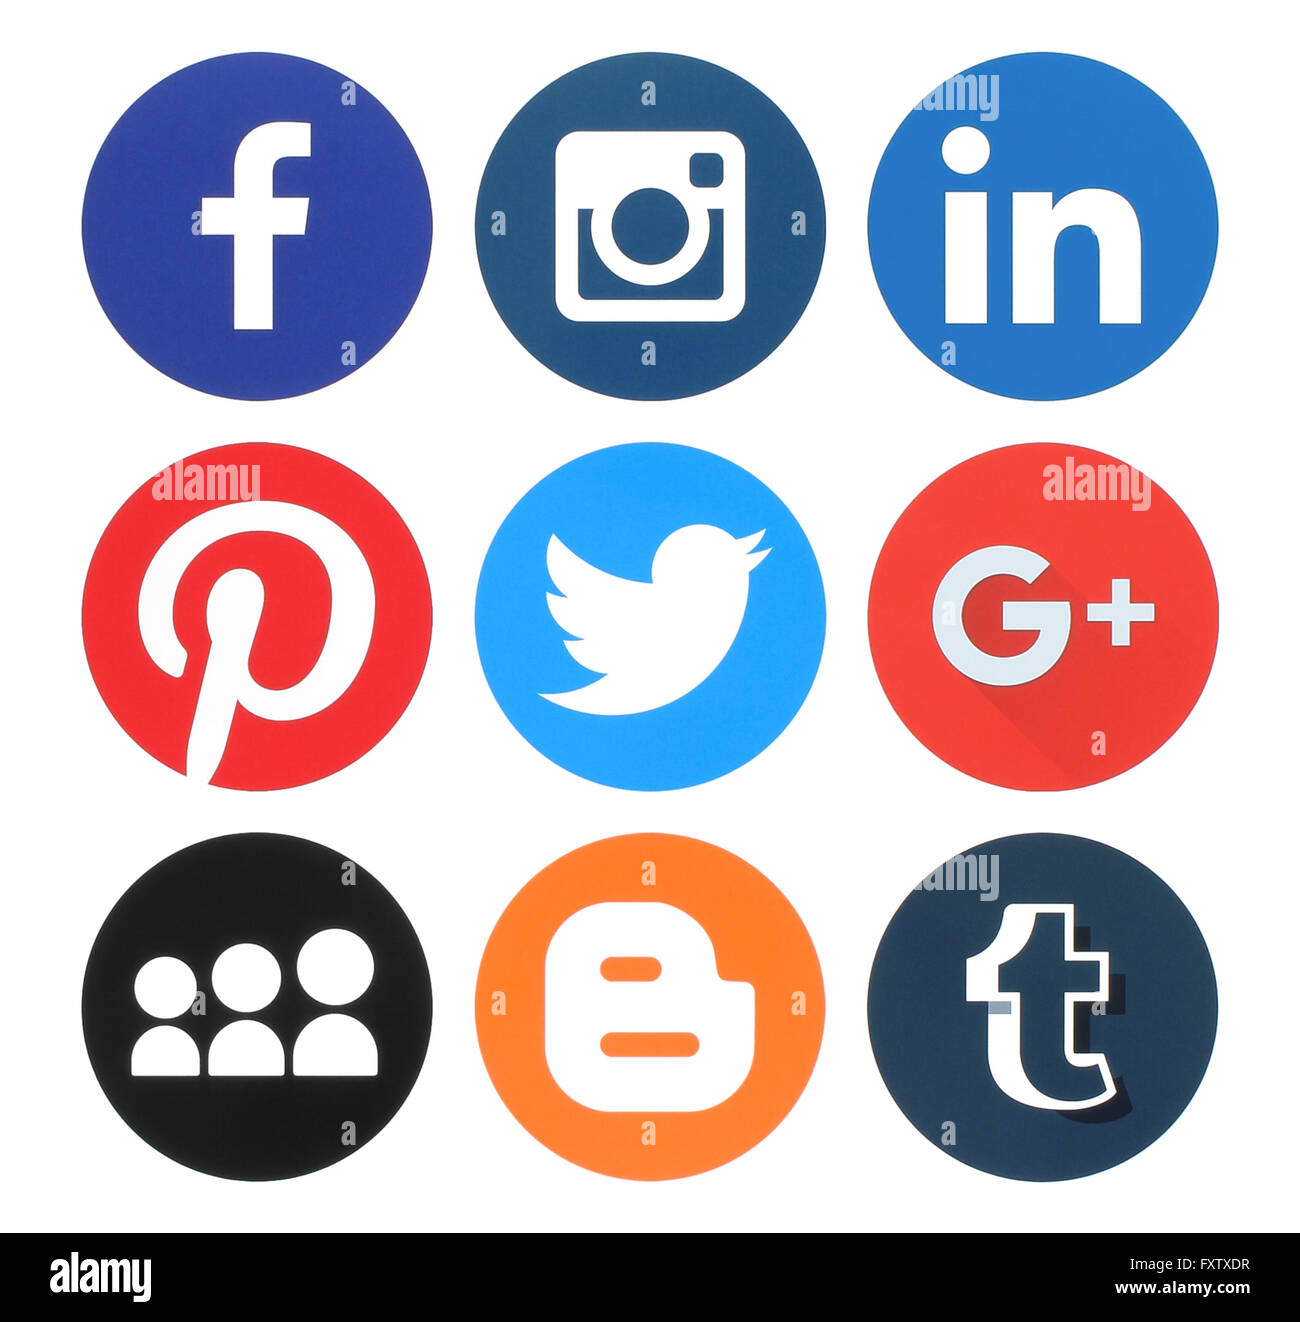 Kiev, Ukraine - March 18, 2016: Collection of popular round social media logos printed on paper:Facebook, Twitter, - Stock Image